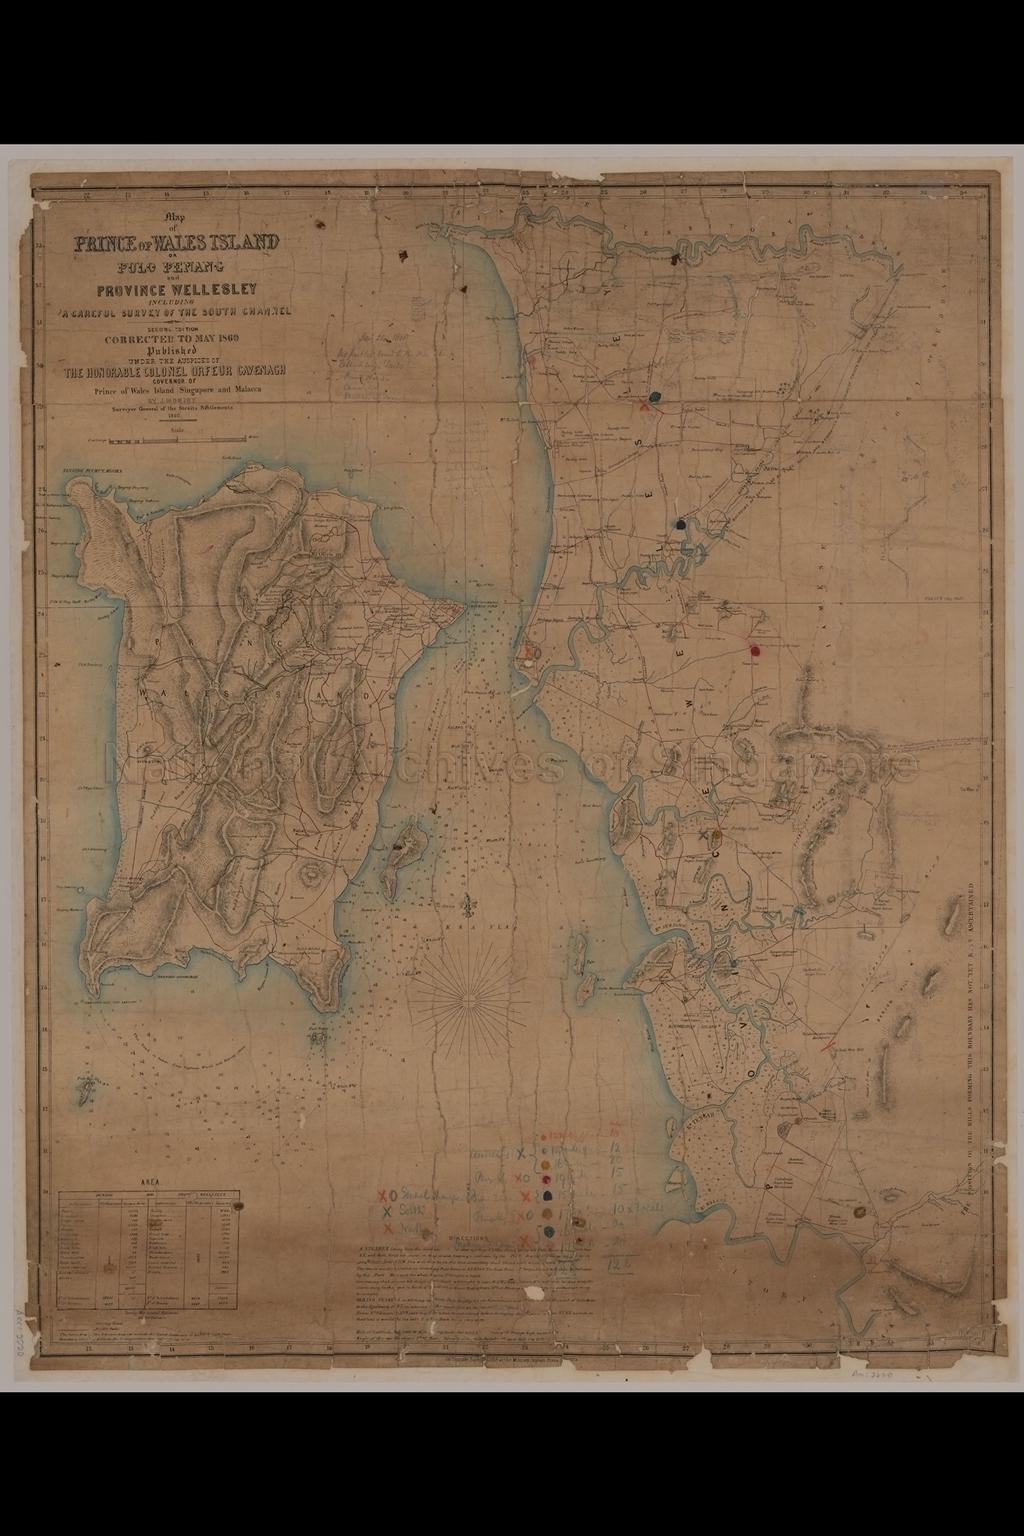 Map of Prince of Wales Island, or Pulo Penang and Province  …